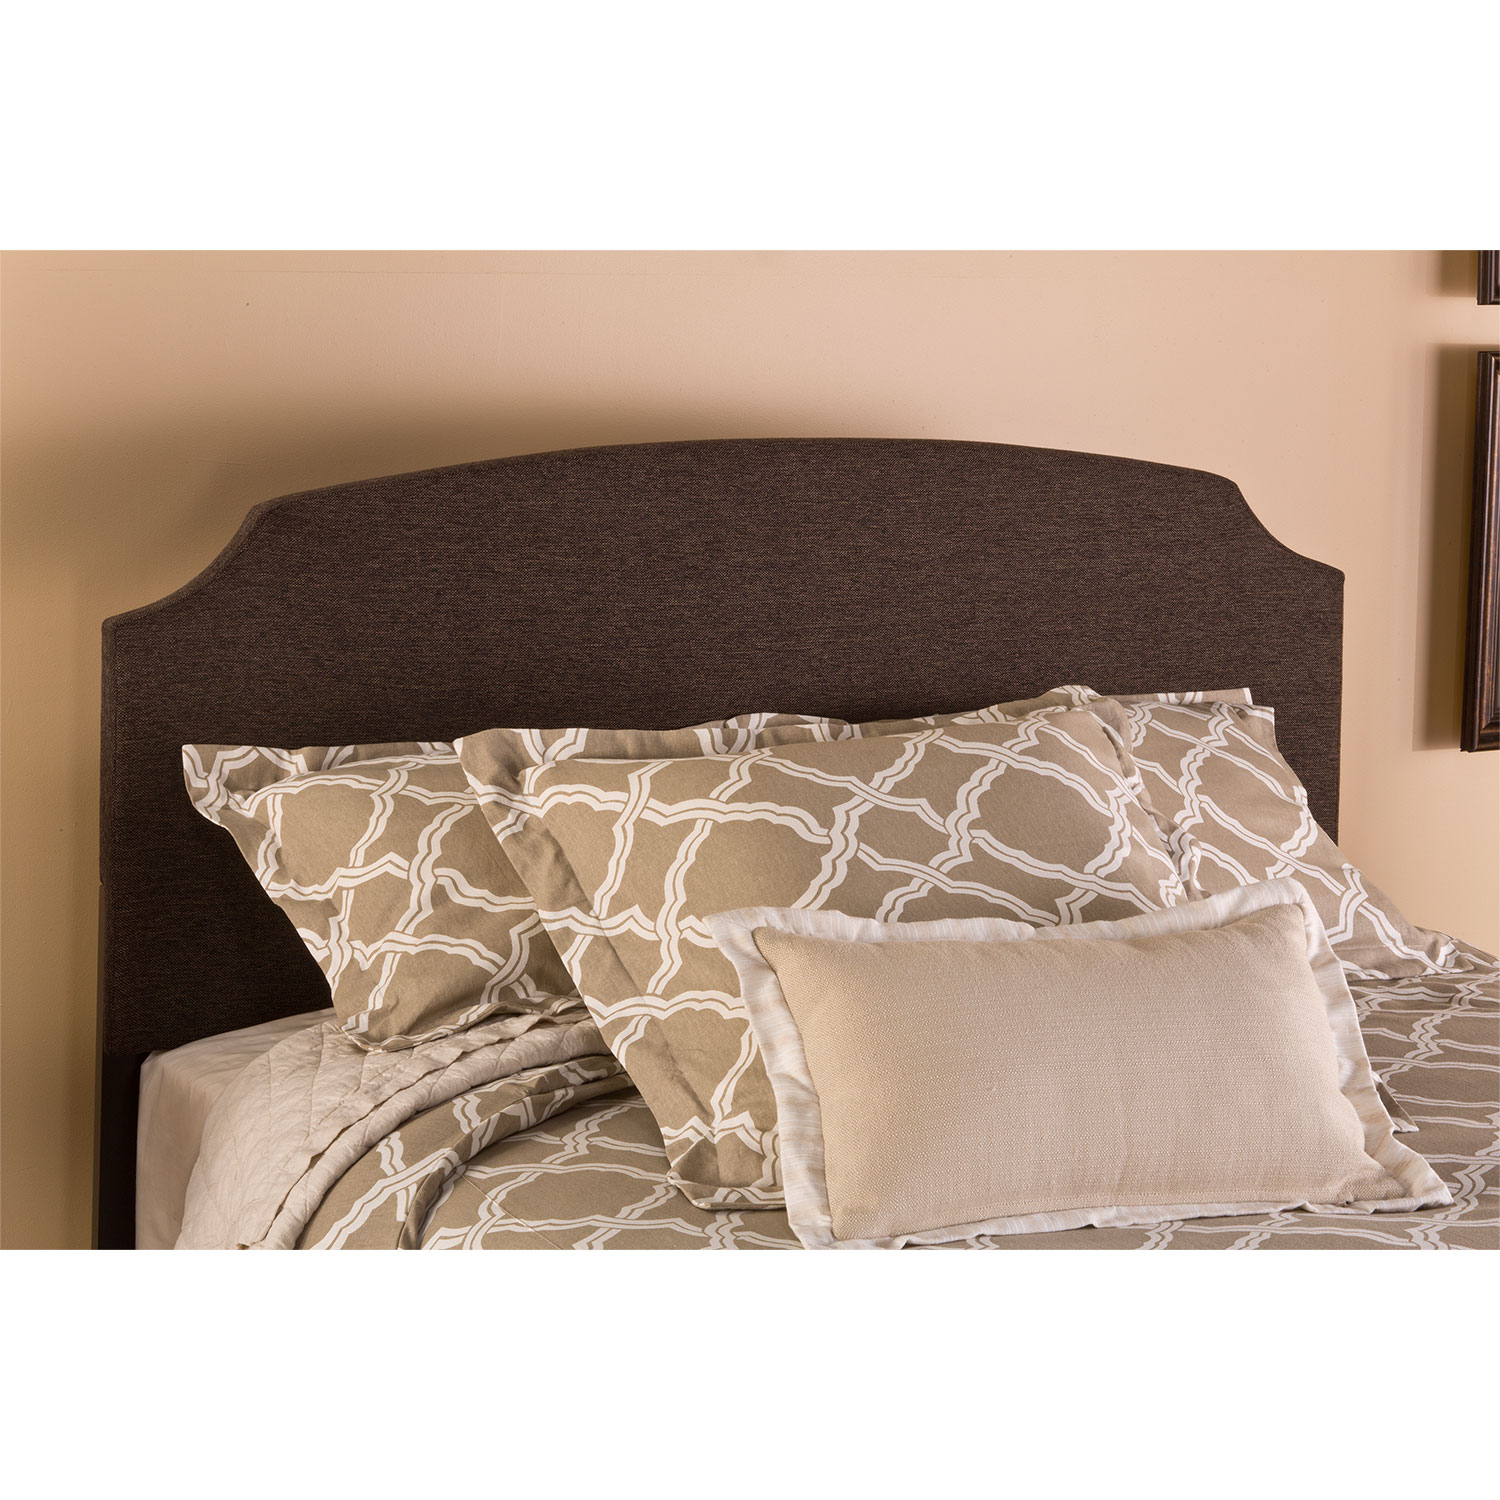 Lawler King Headboard - Black